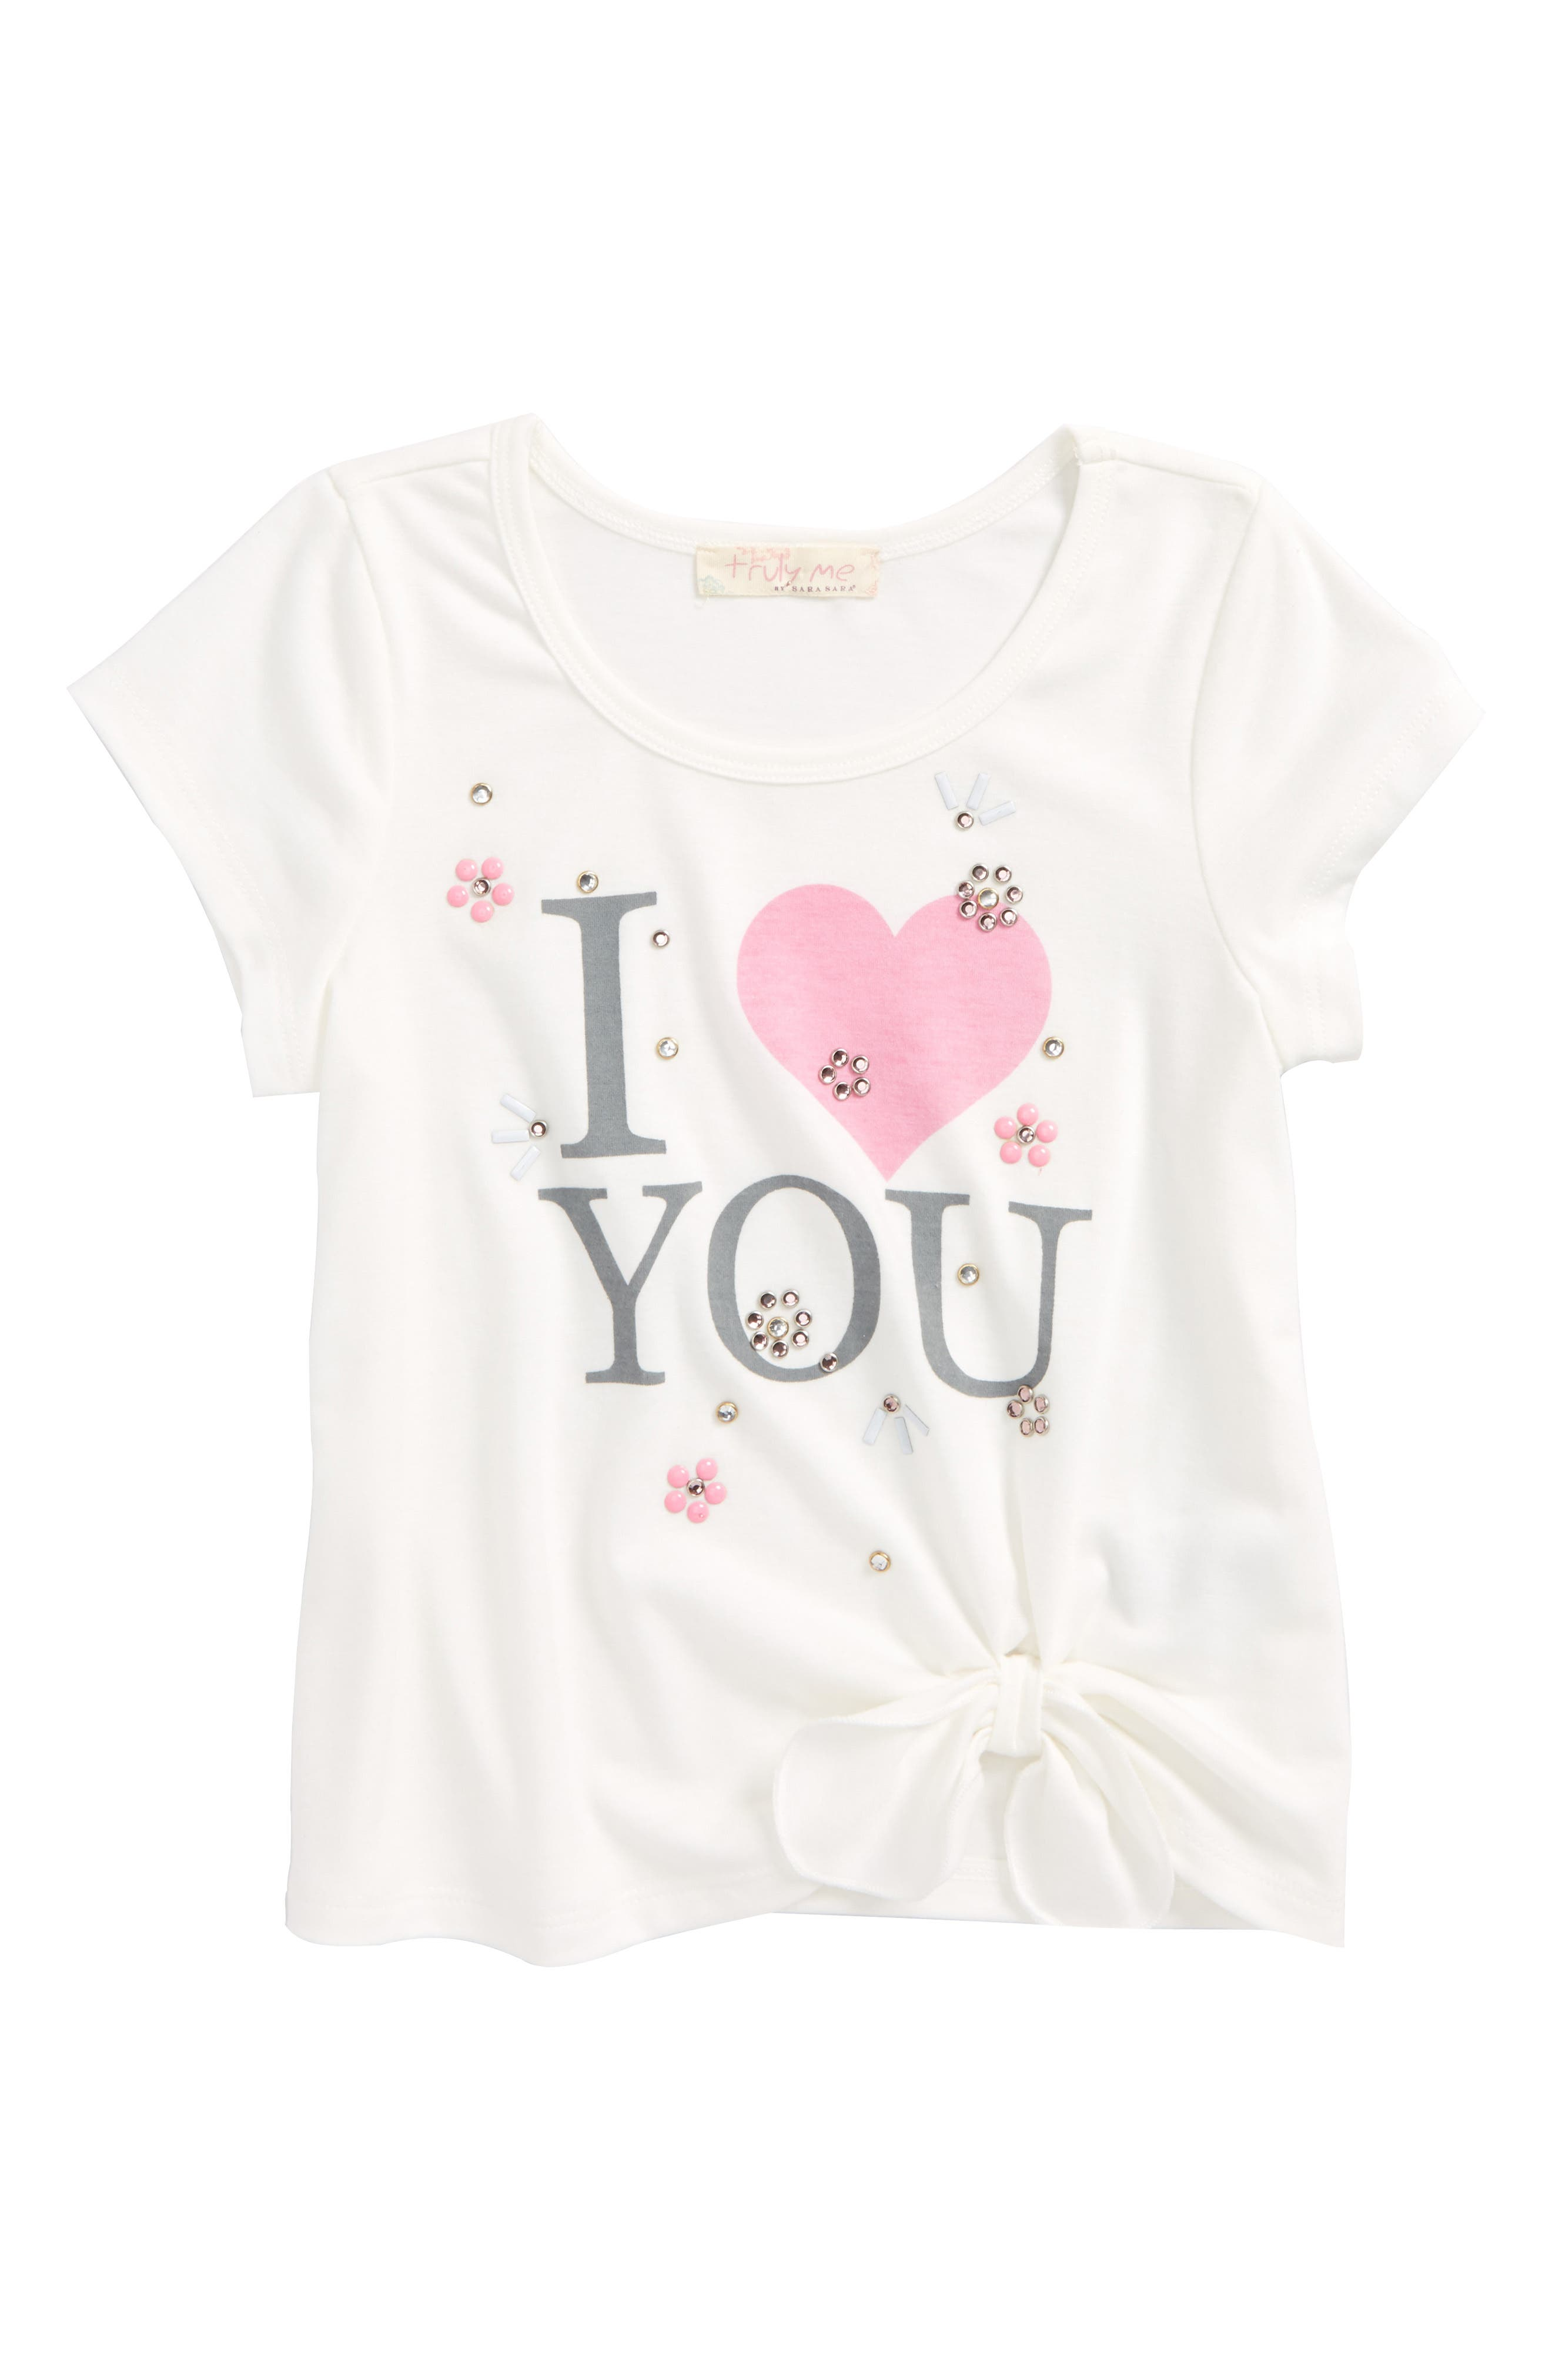 Truly Me Tie Front Graphic Top (Toddler Girls & Little Girls)